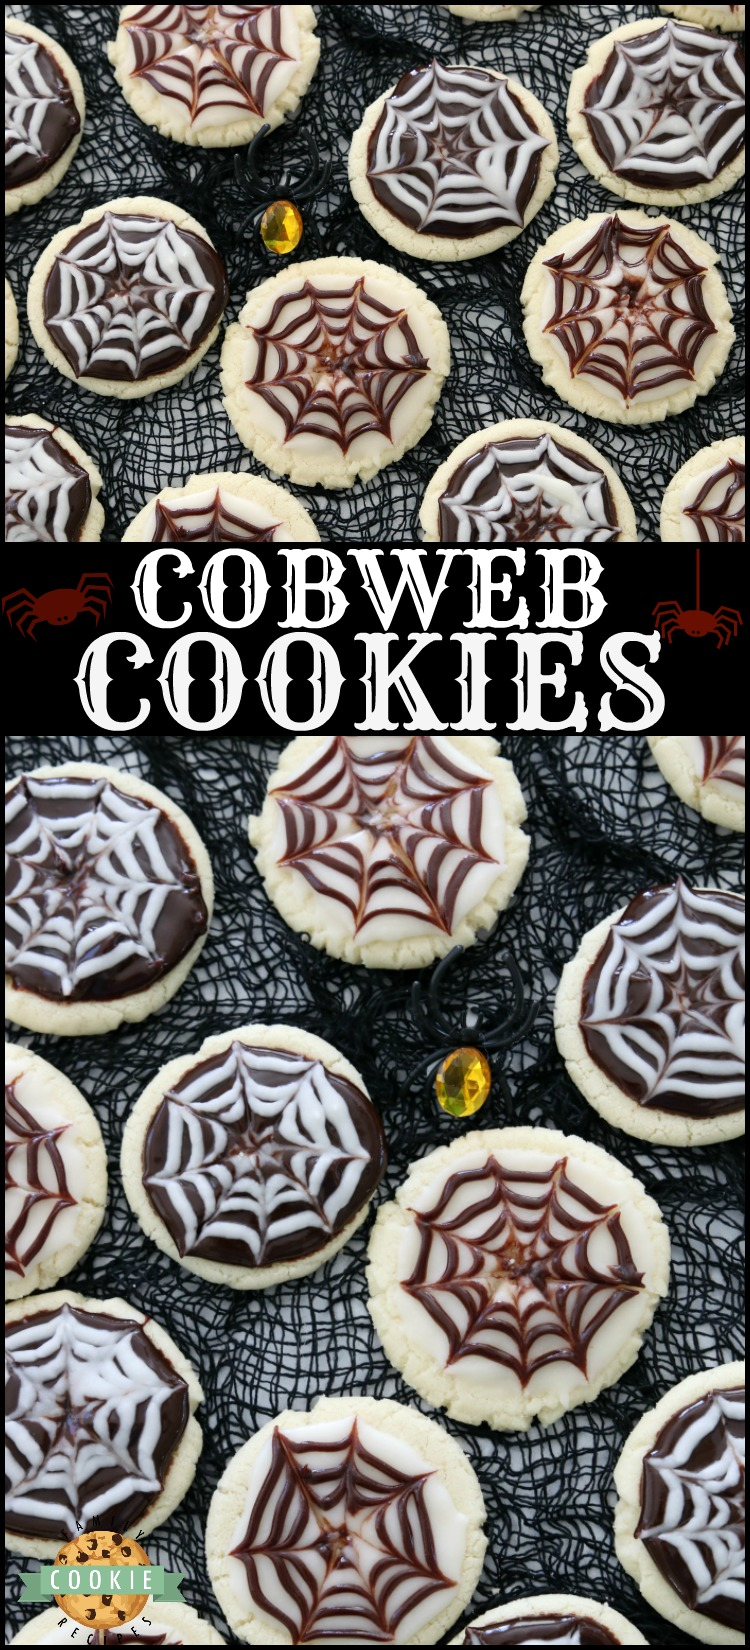 Halloween Cobweb Cookies are spectacularly spooky and completely delicious! Sugar cookies topped with chocolate & vanilla icing- no coloring! Quick & easy spider web design made in seconds. Perfect Halloween treats! #cookies #frosting #halloween #baking #trickortreat #dessert FAMILY COOKIE RECIPES